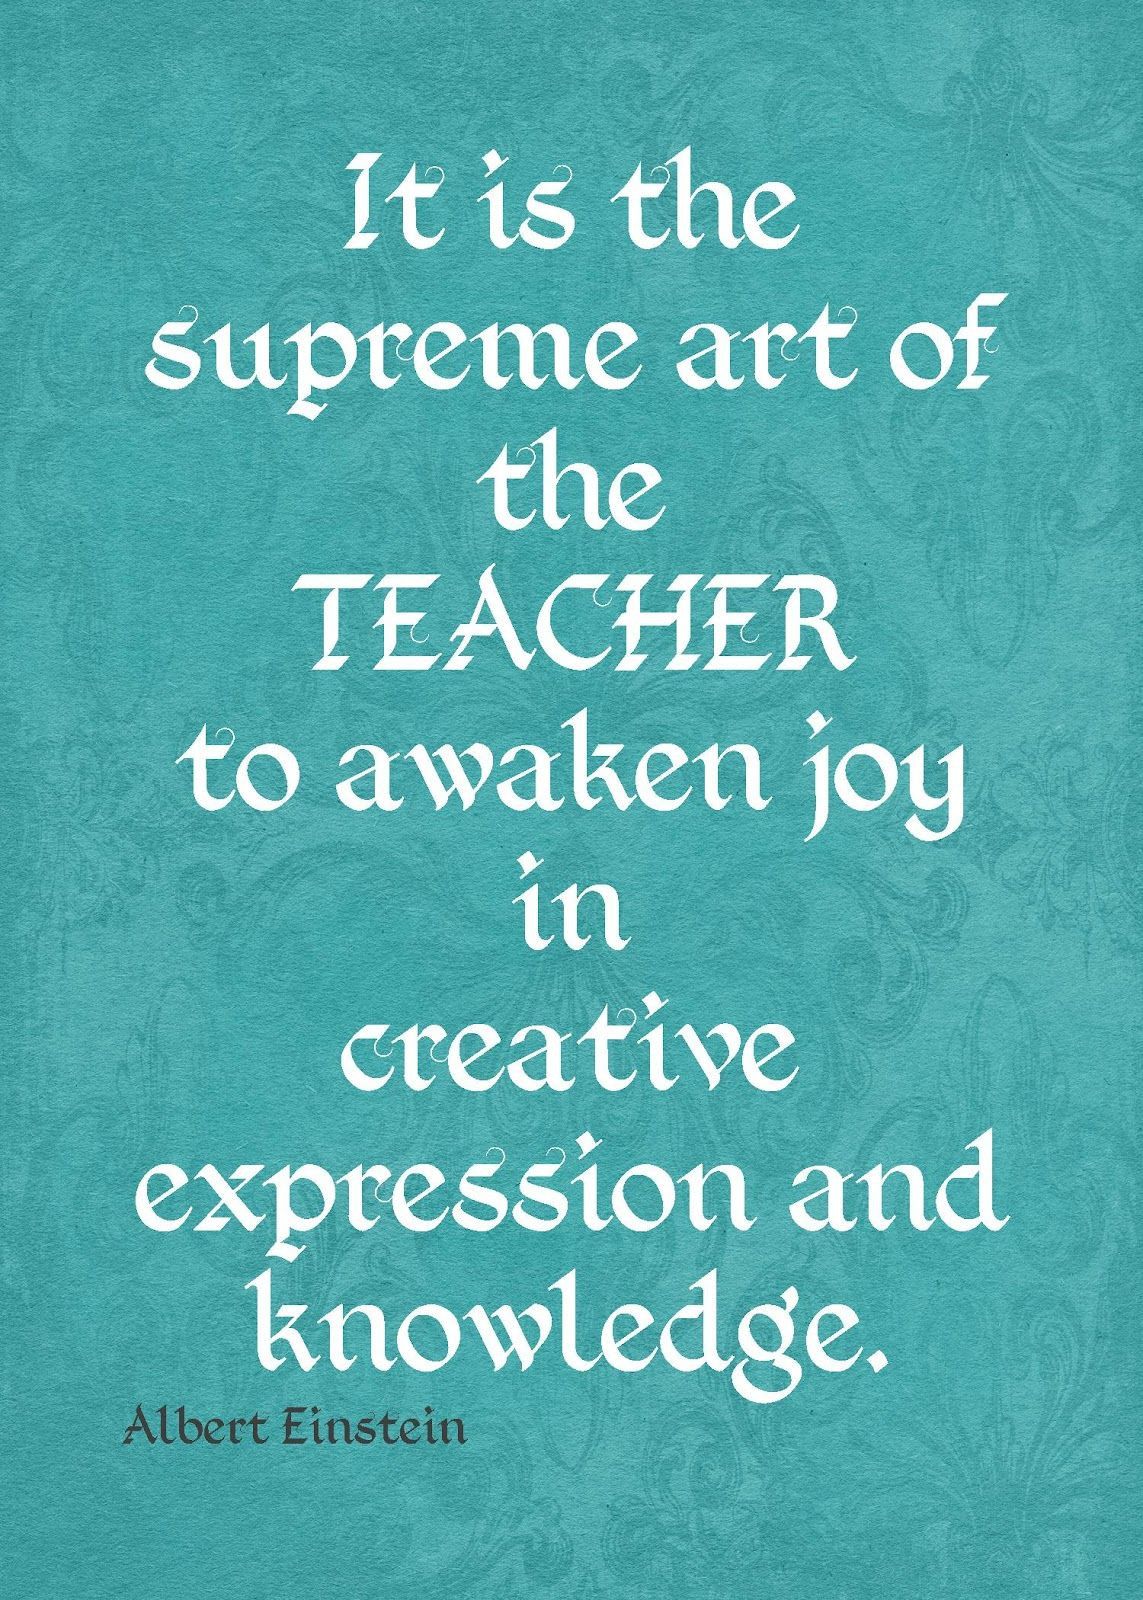 Teaching Quotes Full Of Great Ideas Teacher Gifts  Free Printable Quotes And